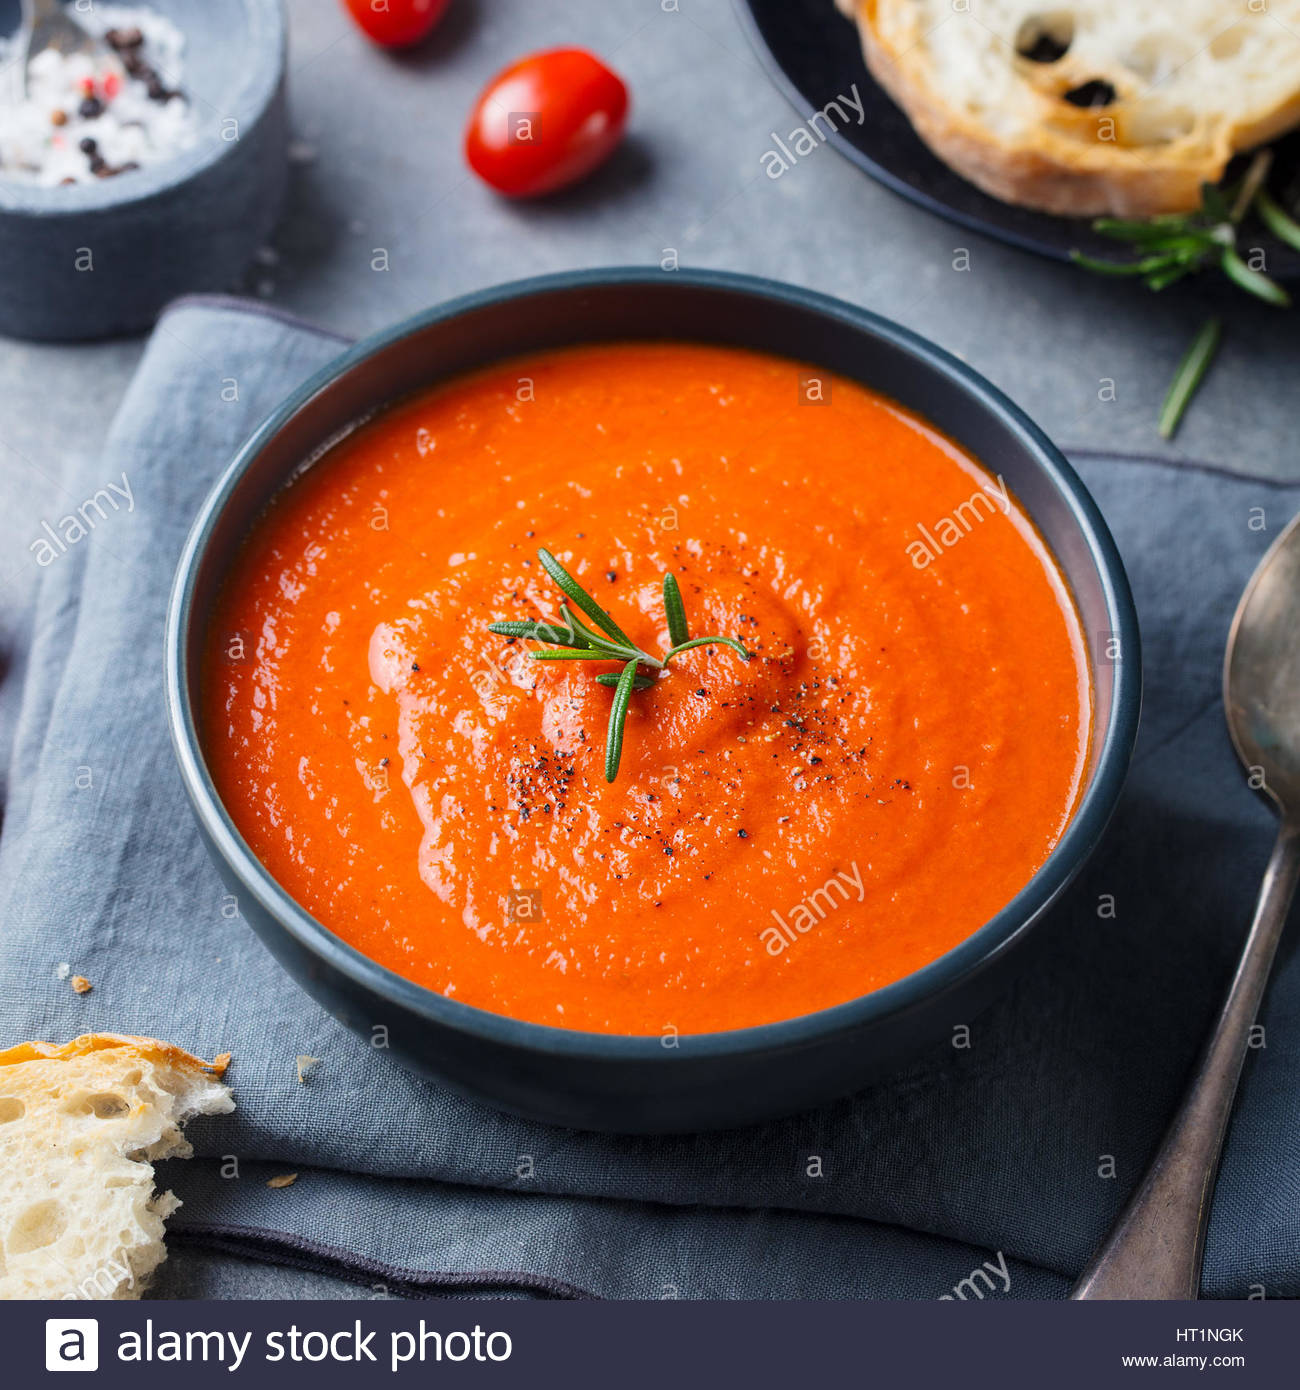 Tomato soup in a black bowl on grey stone background Stock Photo 1300x1390